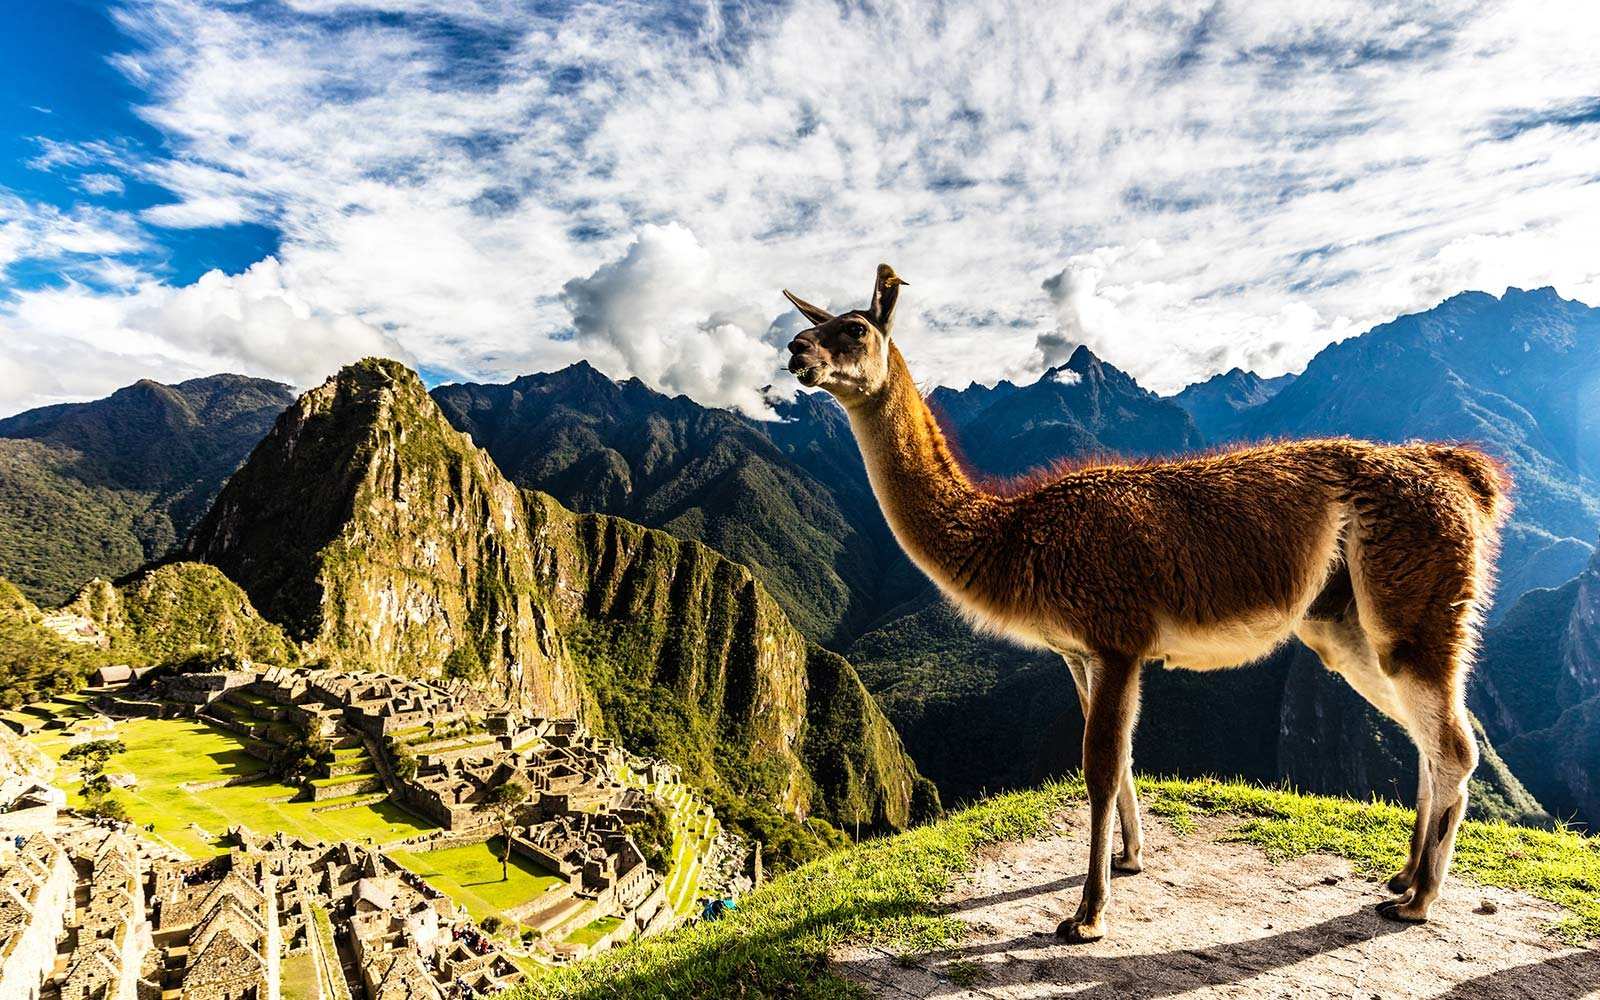 Wallpaper Hello Fall Flights To Peru Are On Sale Starting At 375 Round Trip